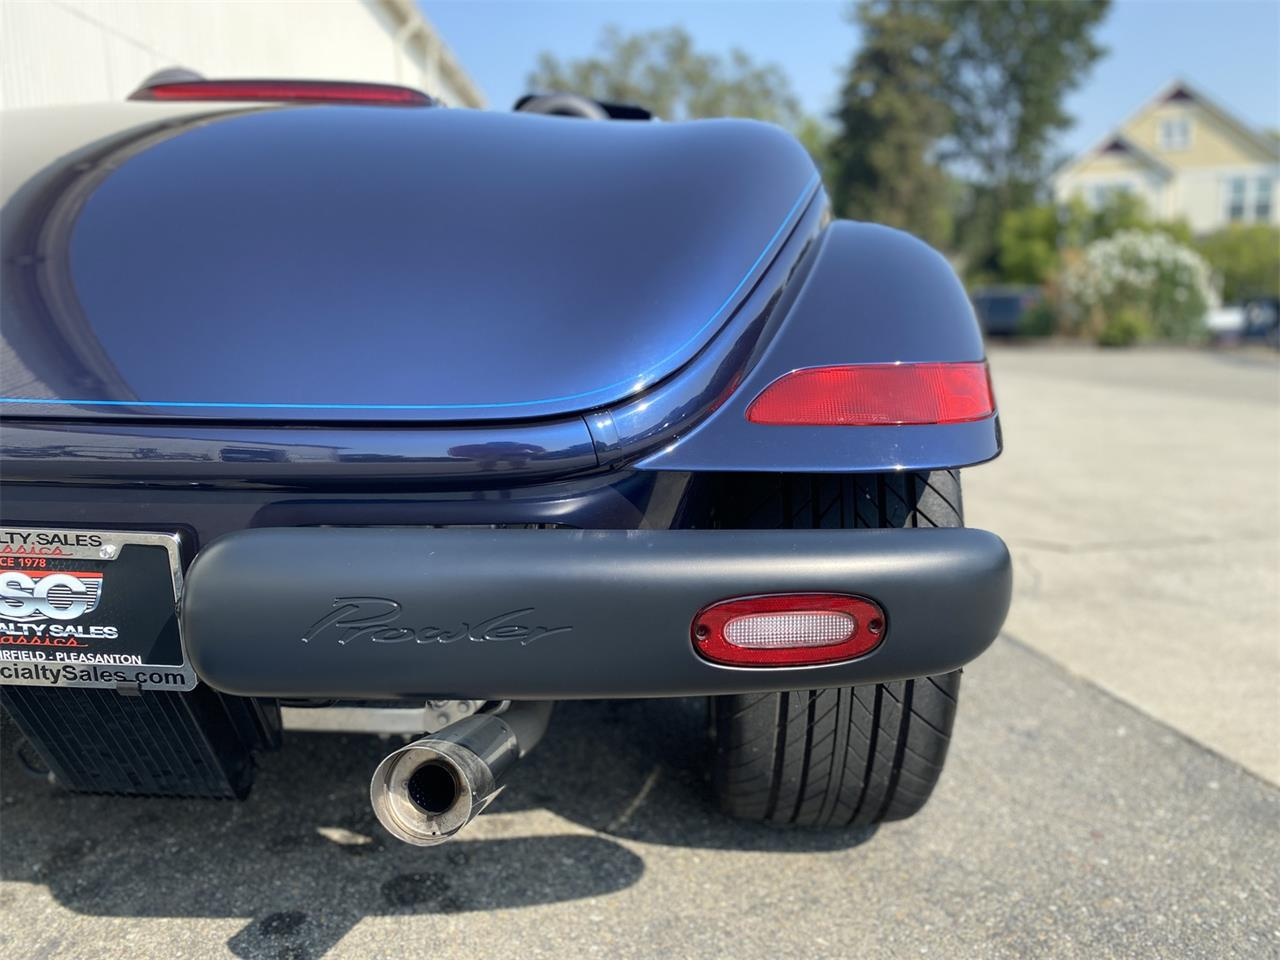 2001 Chrysler Prowler (CC-1391897) for sale in Fairfield, California